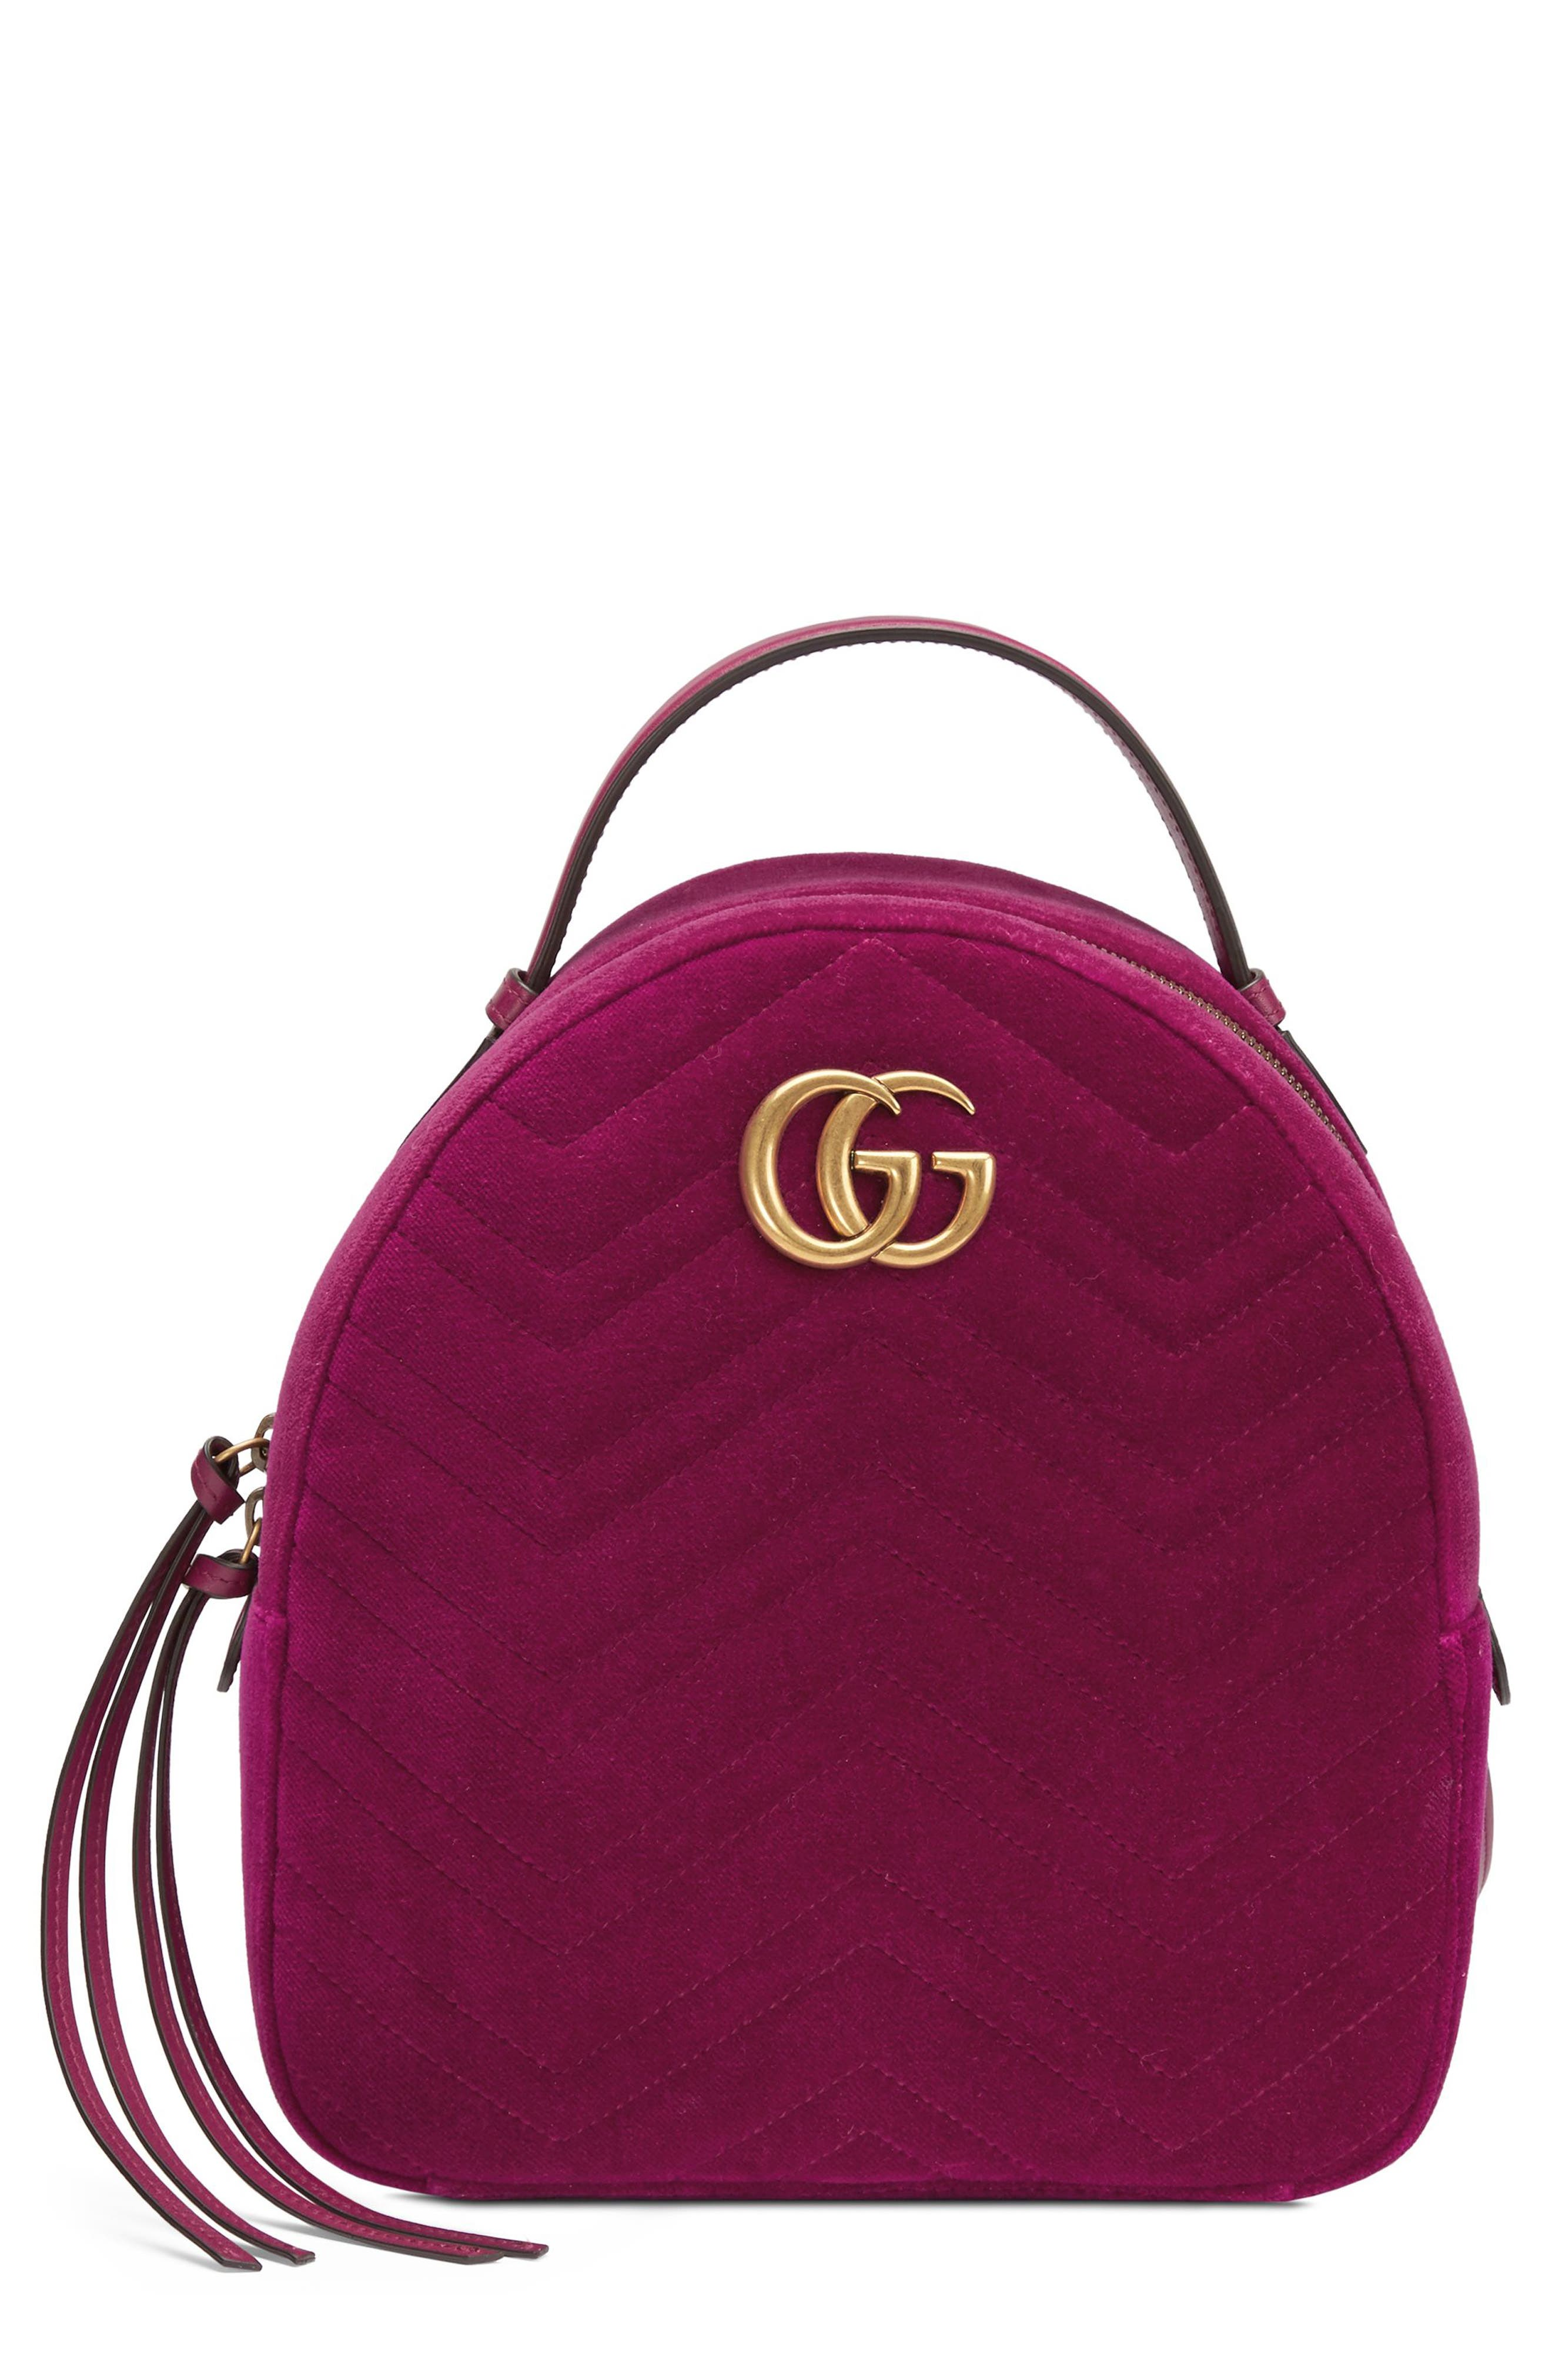 Gg Marmont 2.0 Matelasse Quilted Velvet Backpack - Pink, Fucsia/ Fucsia/ Viola